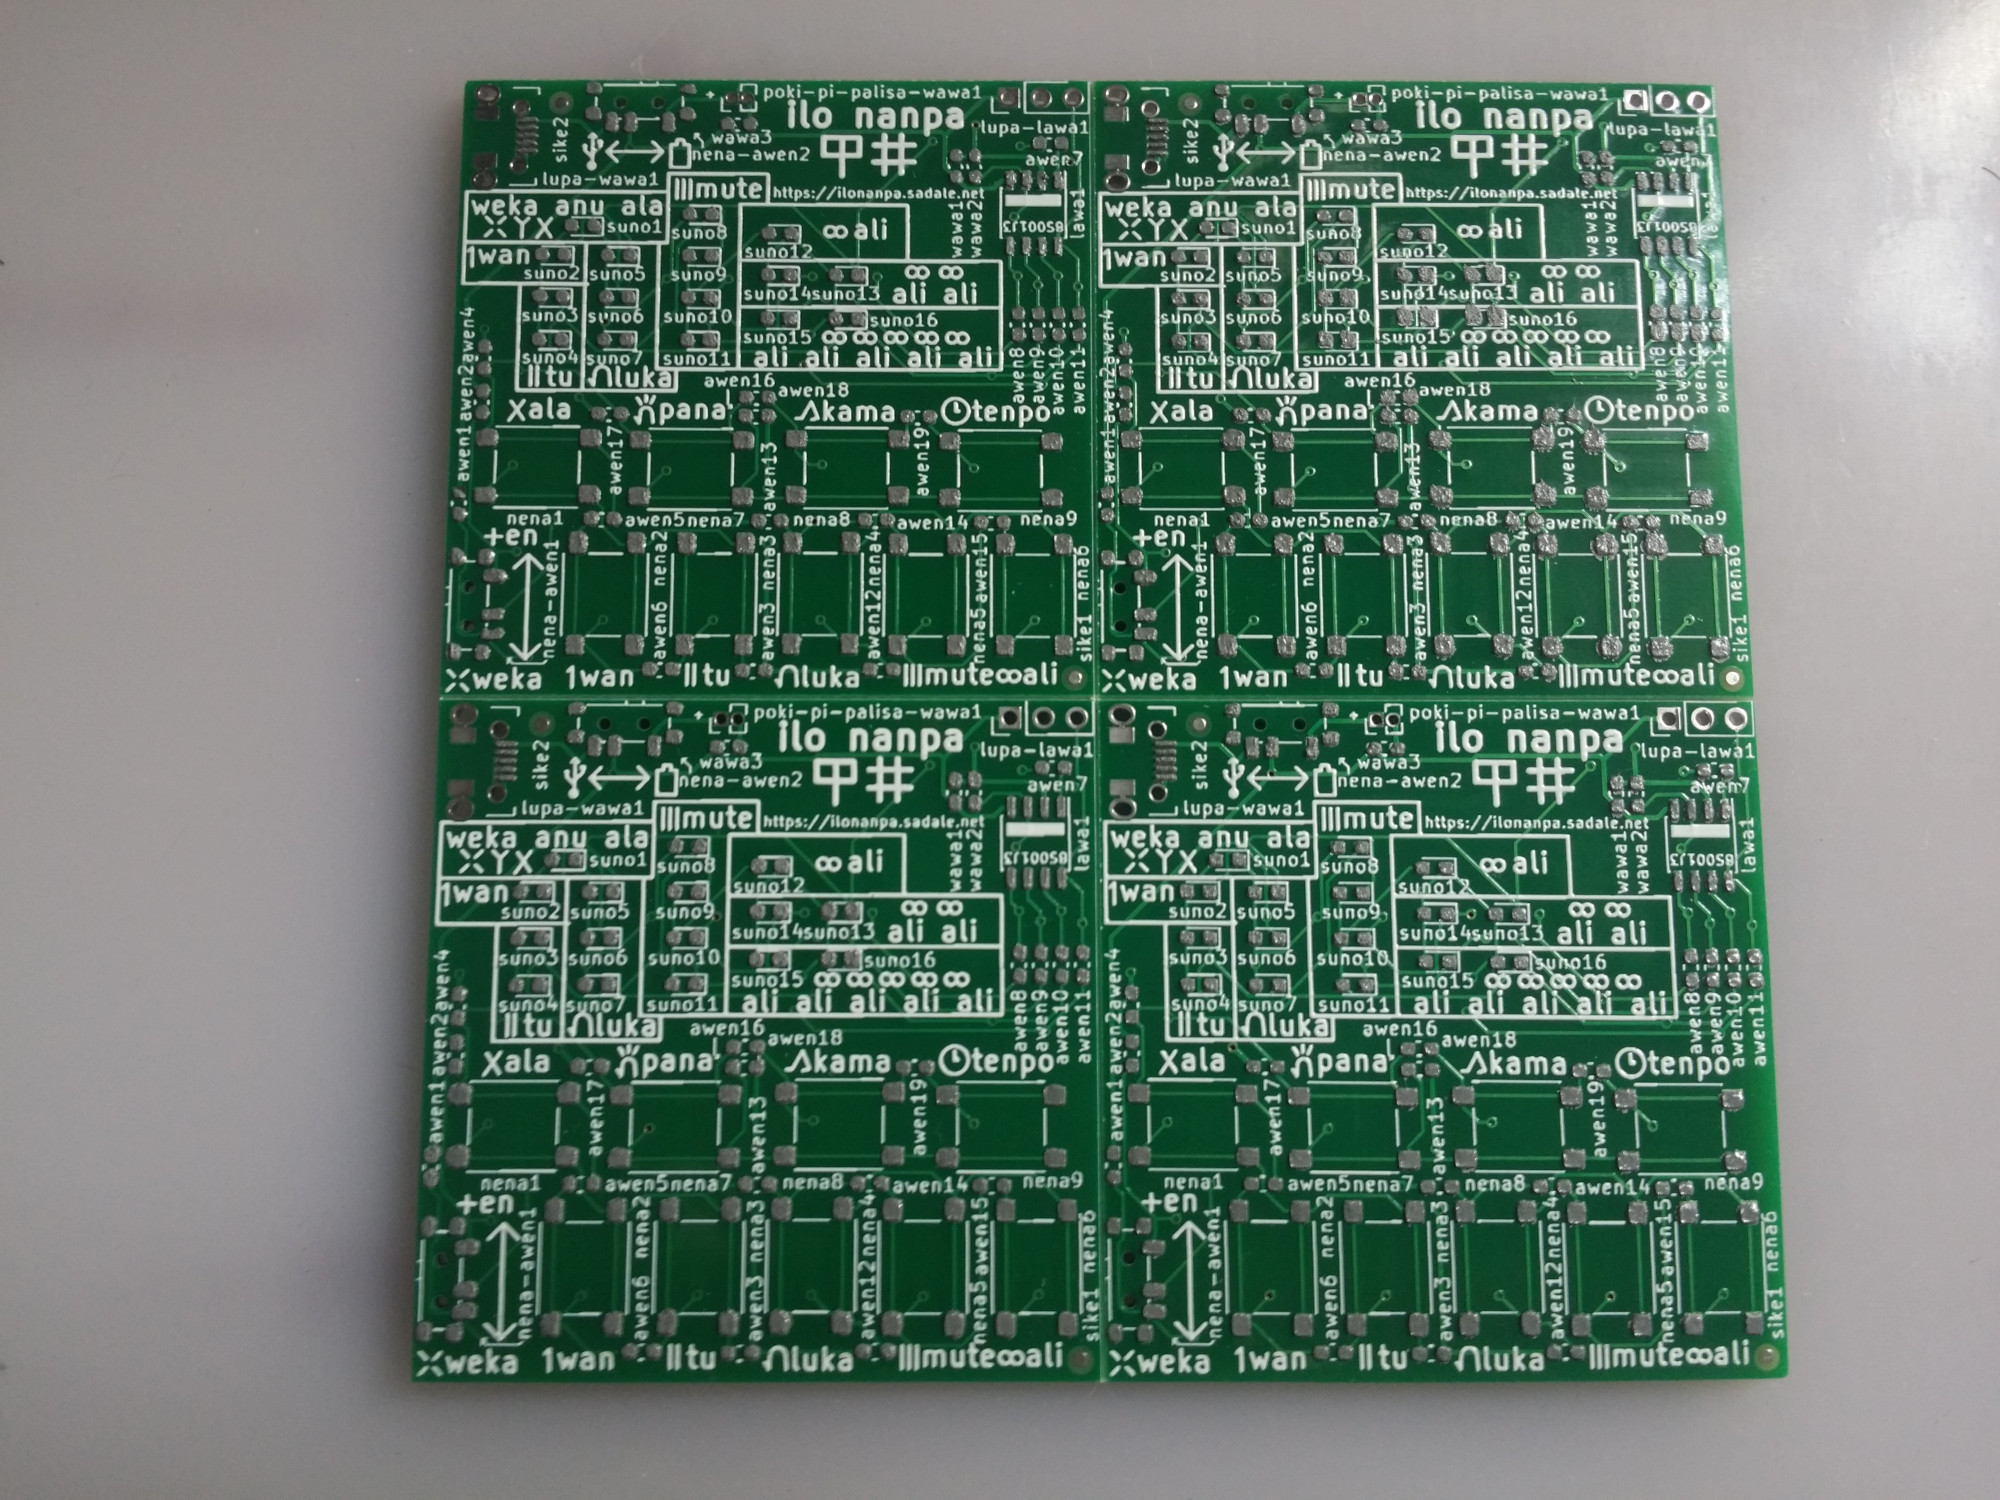 A photo showing PCB with solder paste on all of its pads